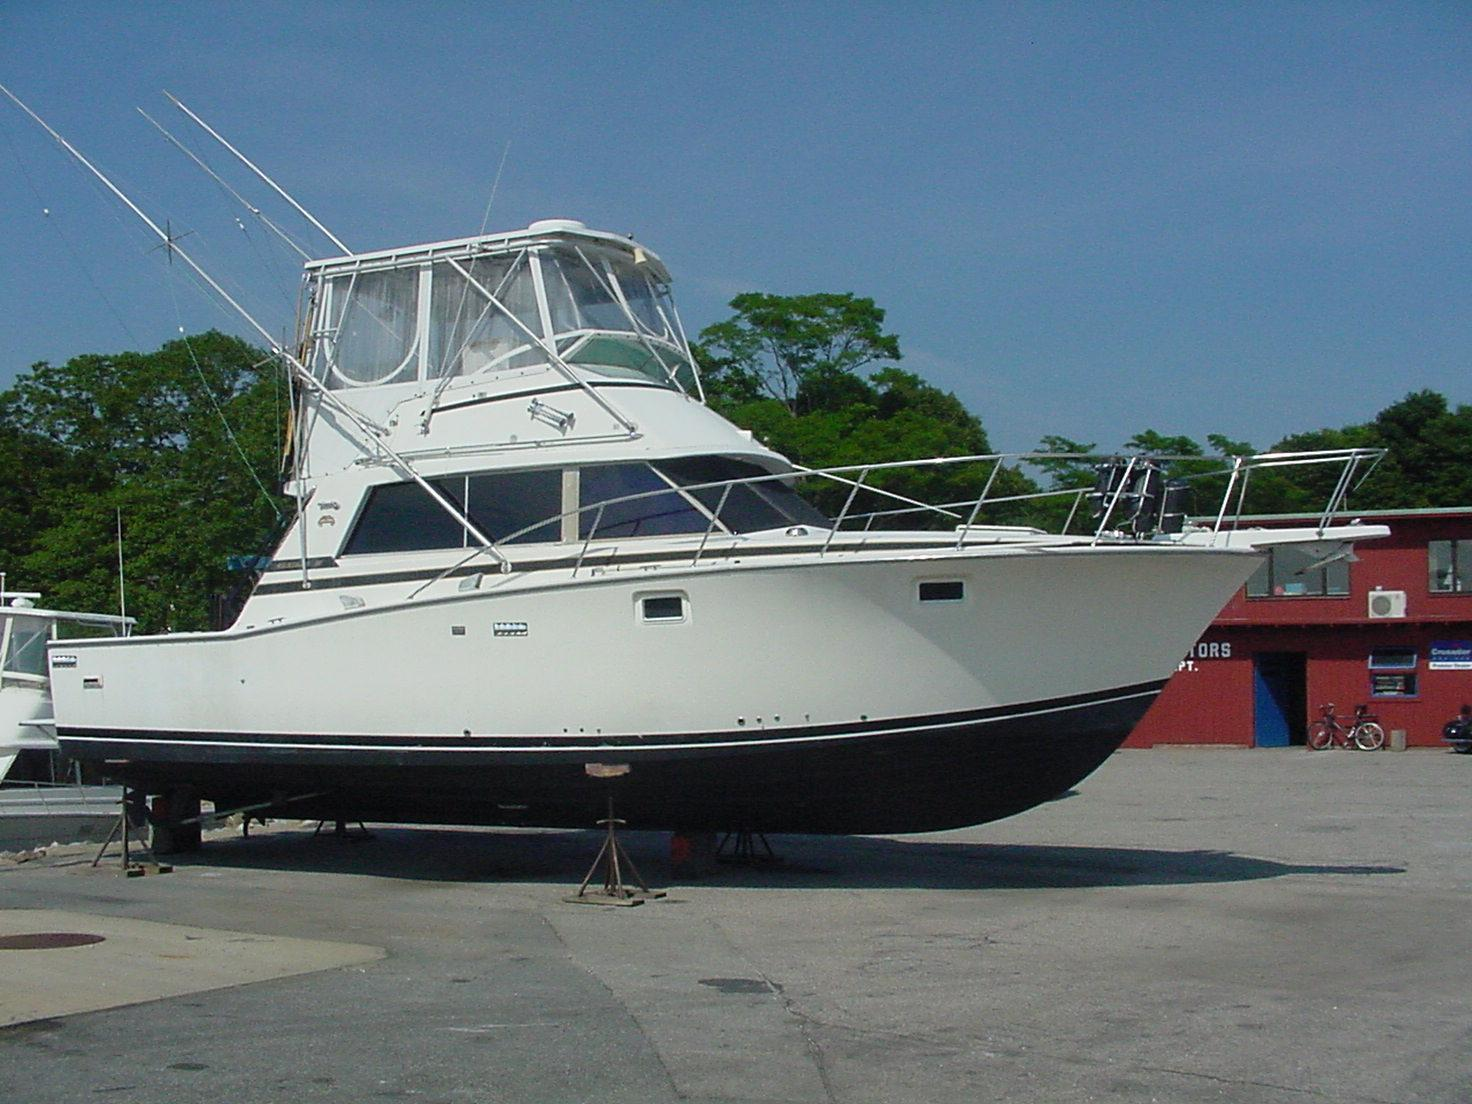 bertram personals Jersey shore boats - by owner - craigslist cl jersey shore   boats - by  favorite this post aug 9 35 bertram convertible 1972 w/2001 cats.